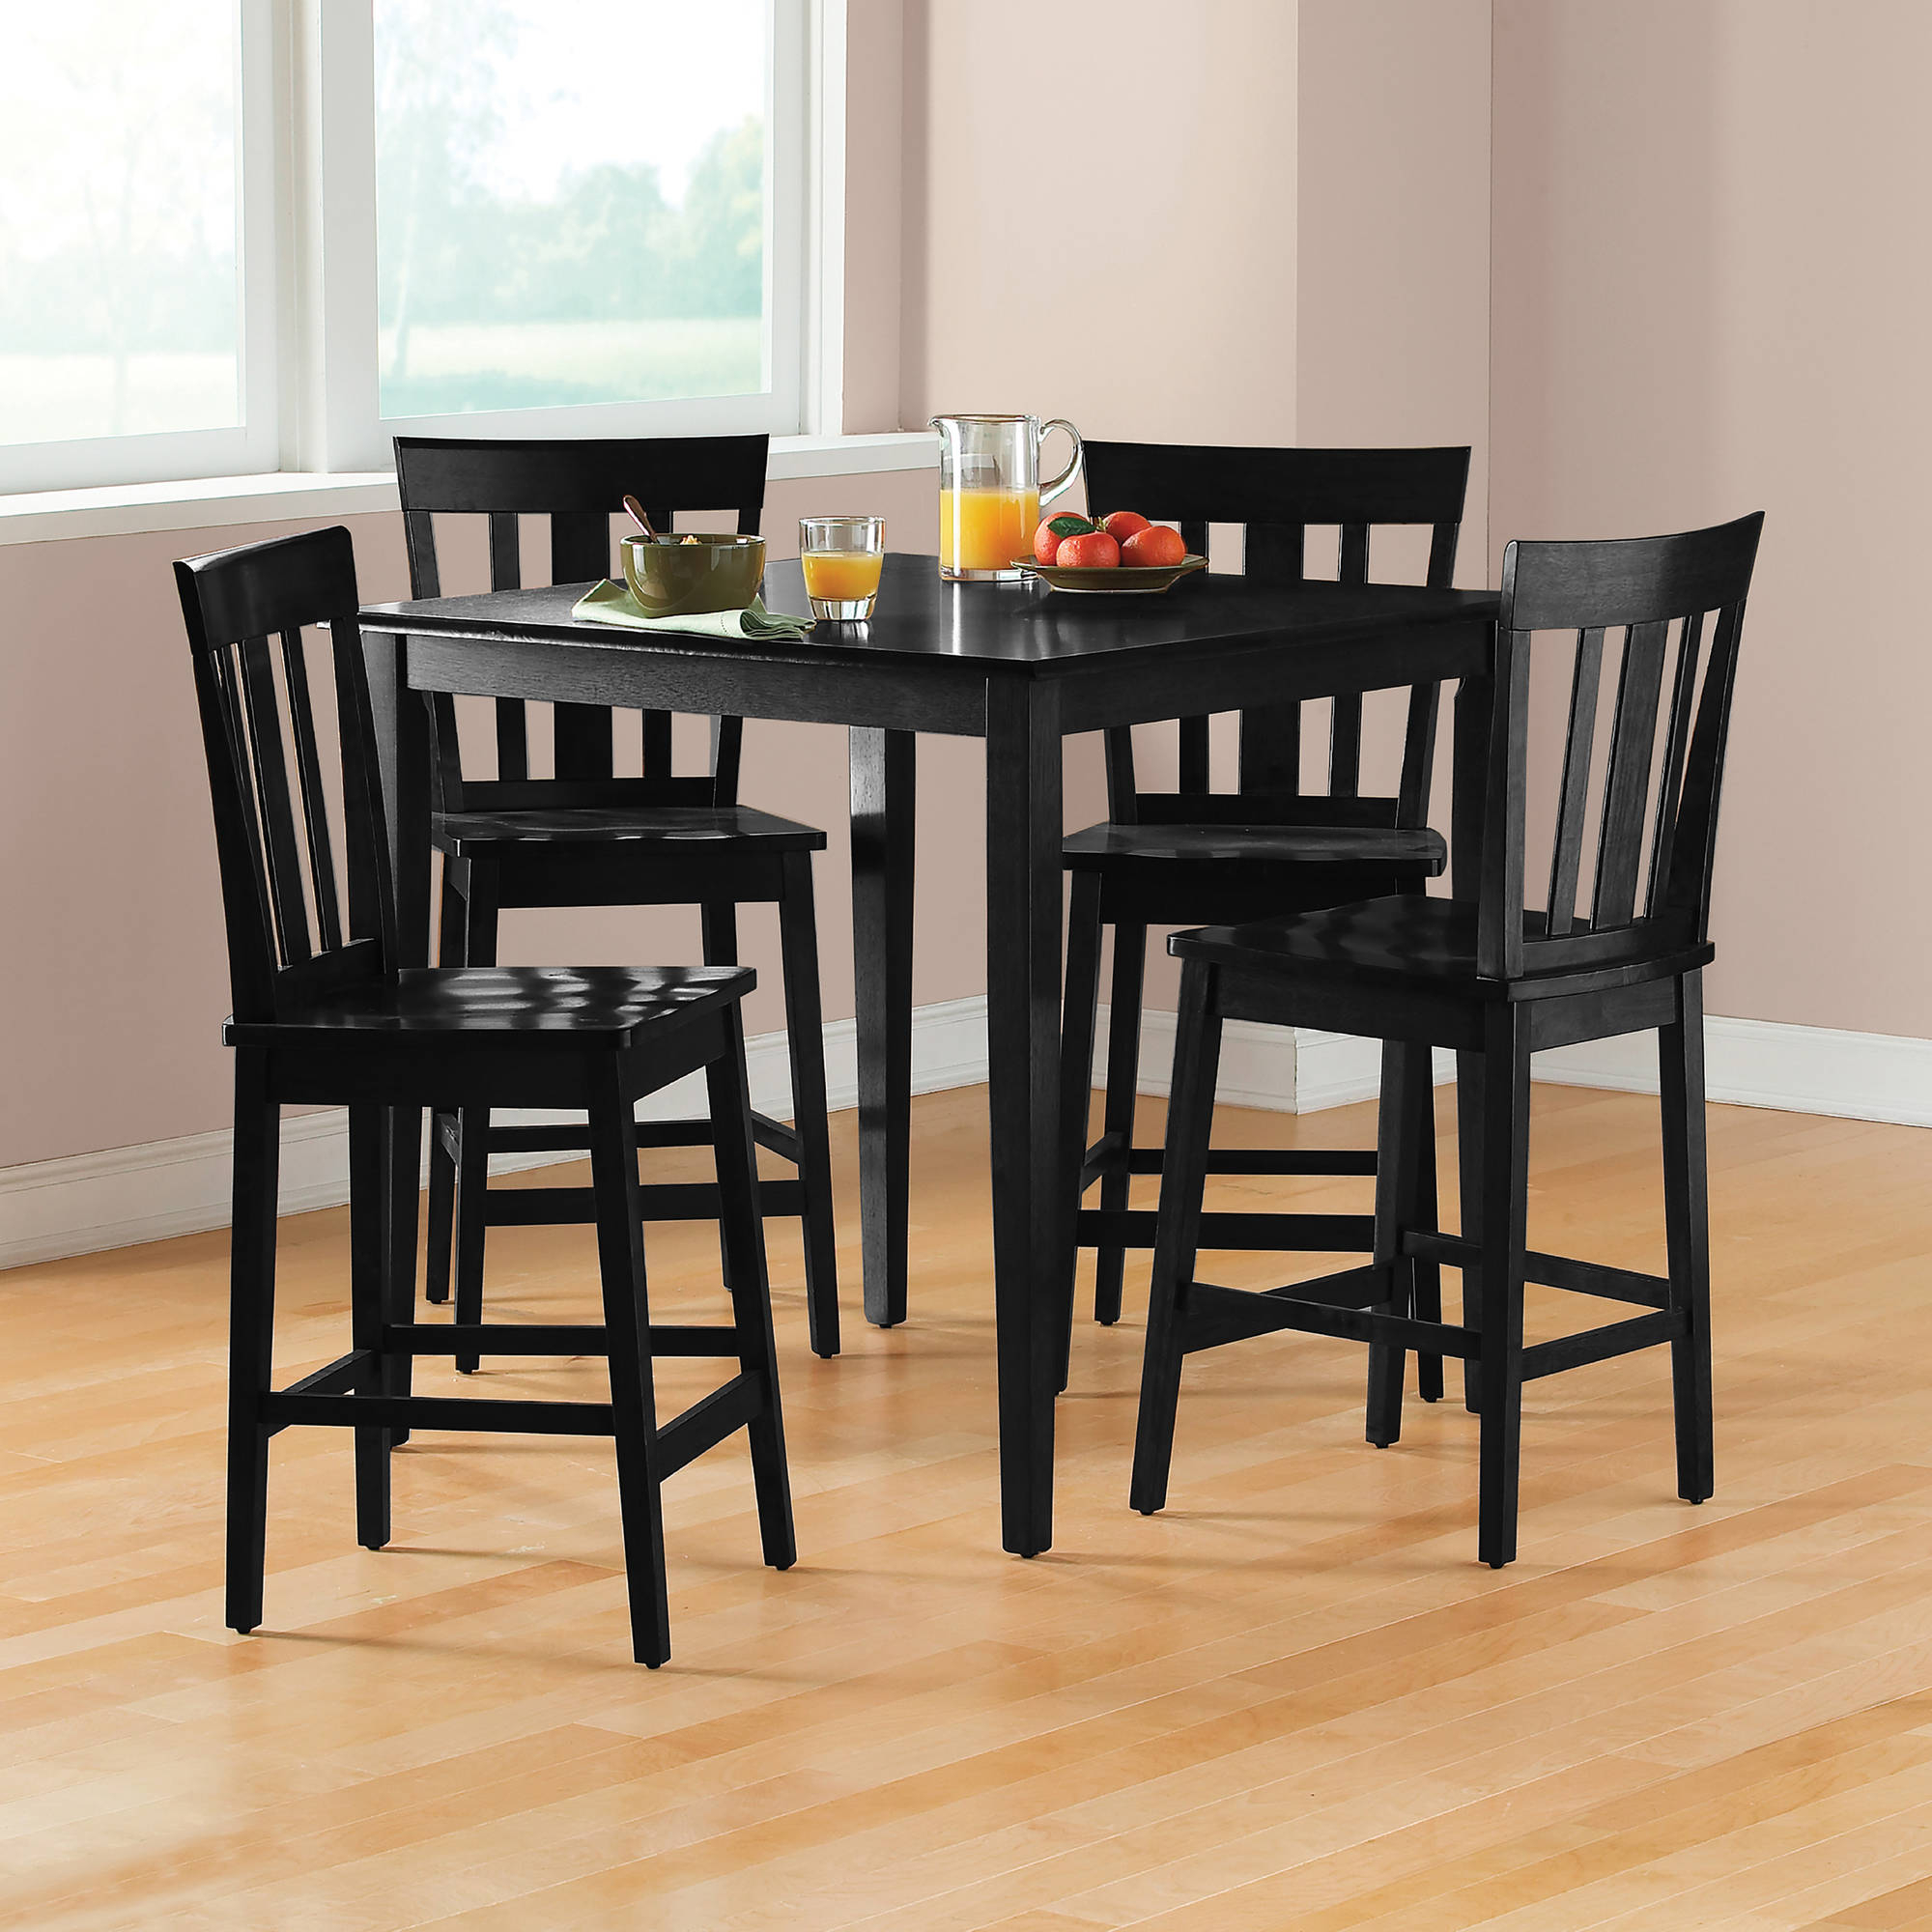 Inspiration about Well Known Mainstays 5 Piece Mission Counter Height Dining Set – Walmart With Goodman 5 Piece Solid Wood Dining Sets (set Of 5) (#8 of 20)